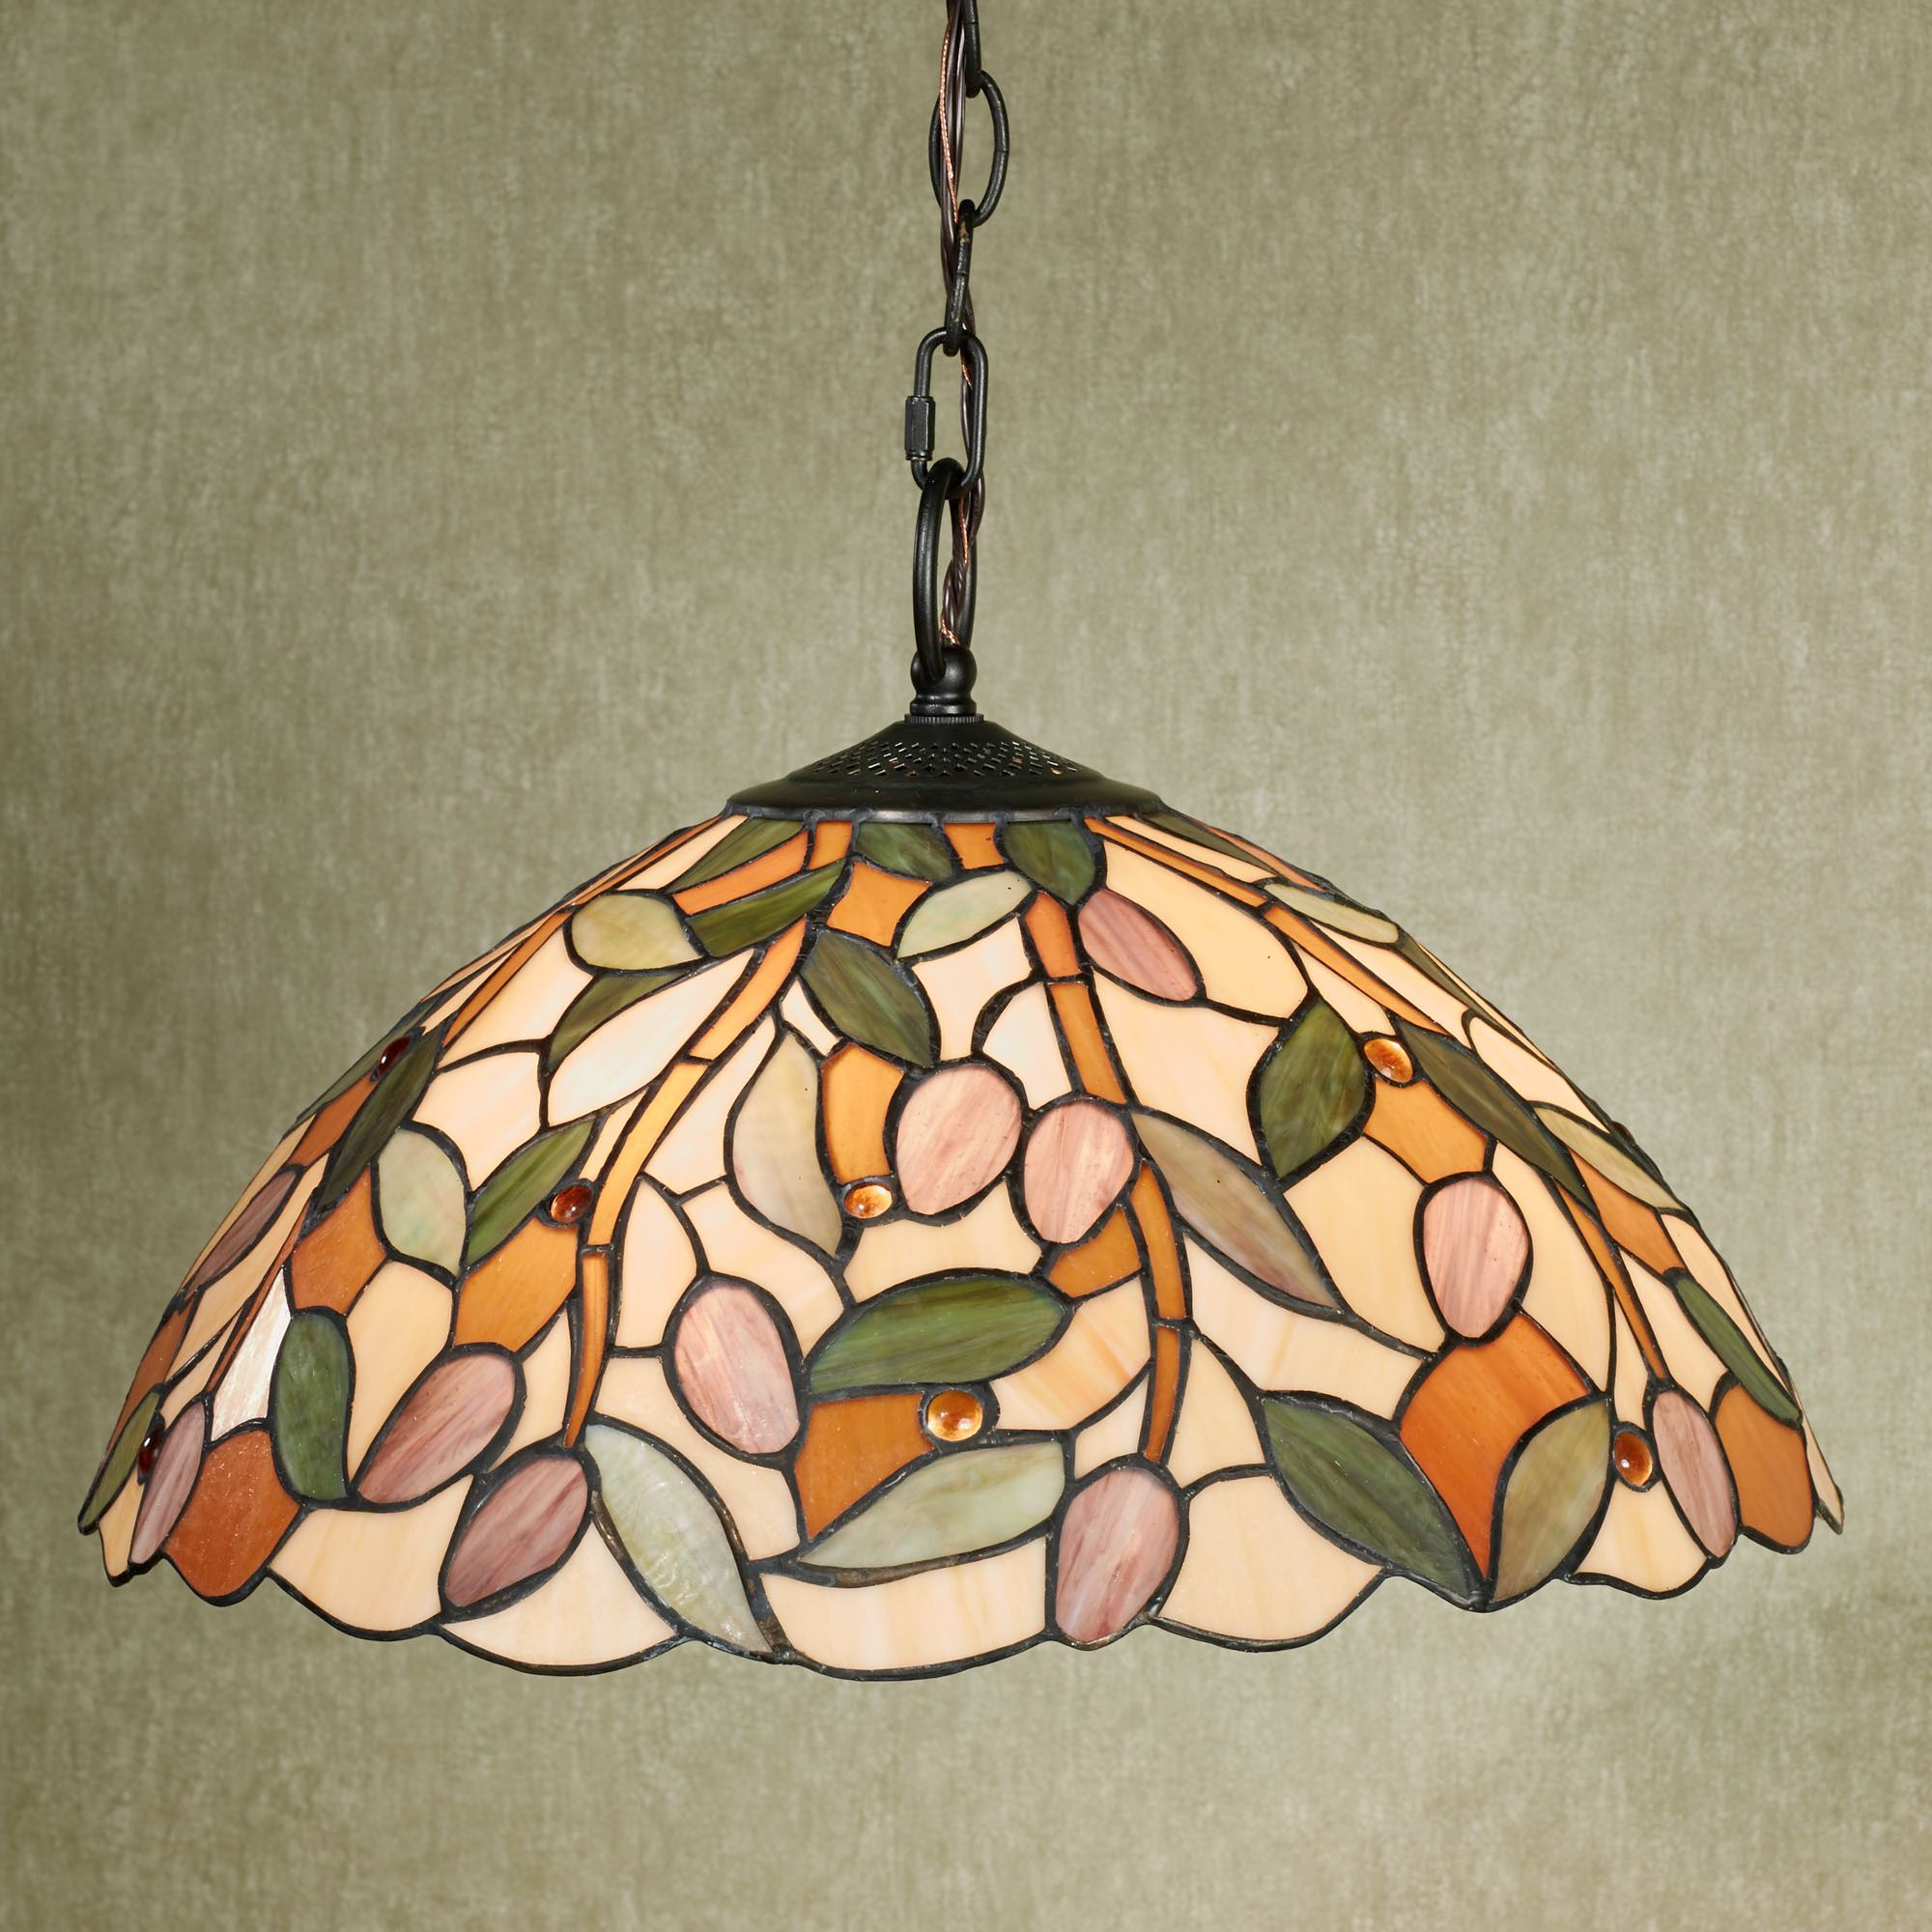 Stained Glass Hanging Lamp.Pascal Stained Glass Hanging Lamp